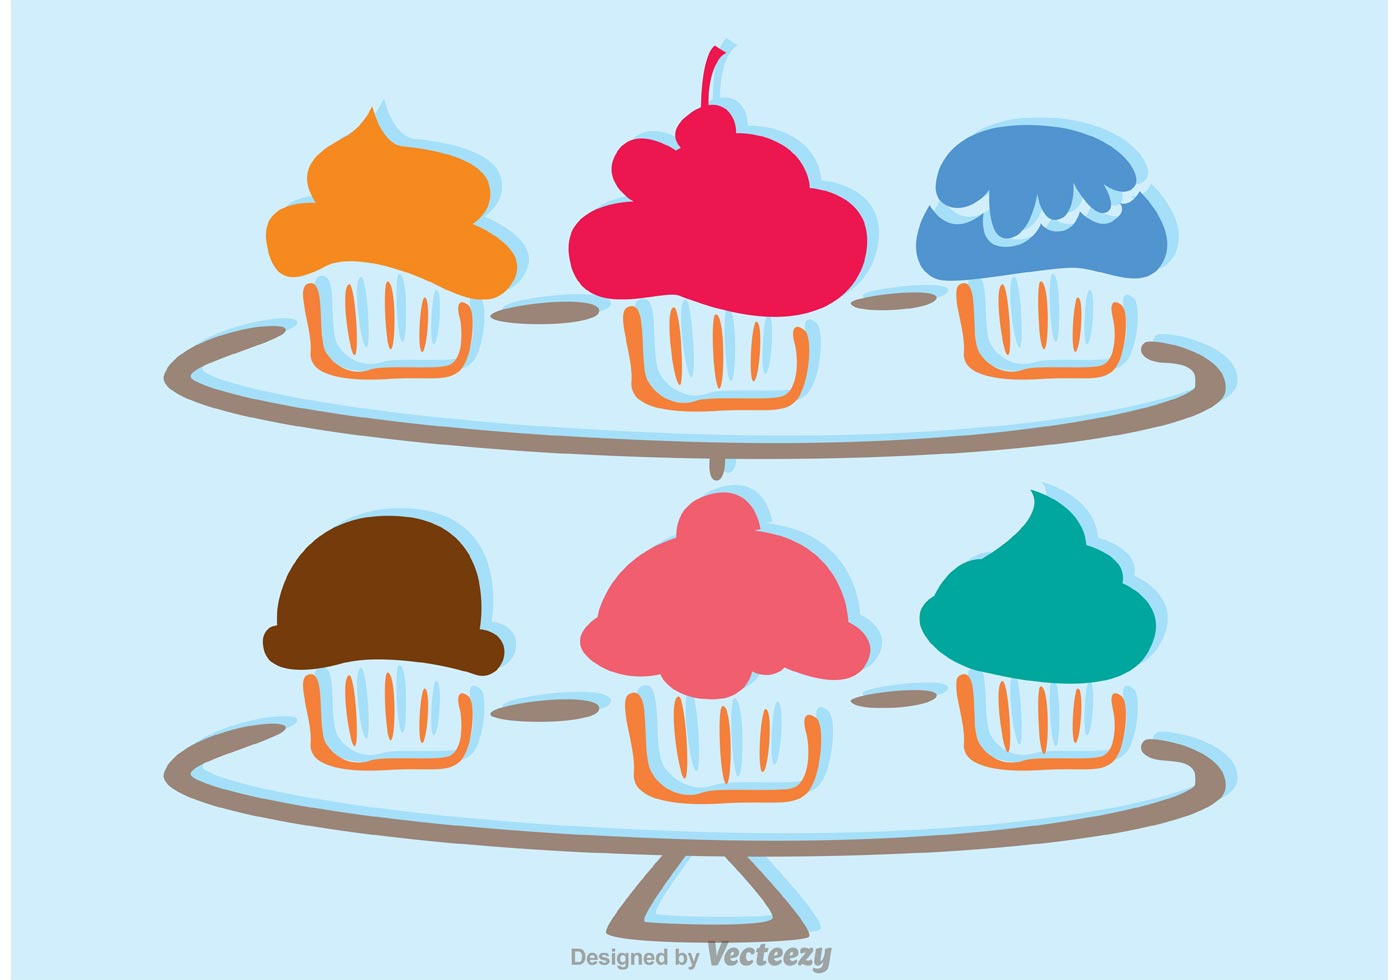 Cupcake Vector Art : Simple Cupcake Stand Vector - Download Free Vector Art ...